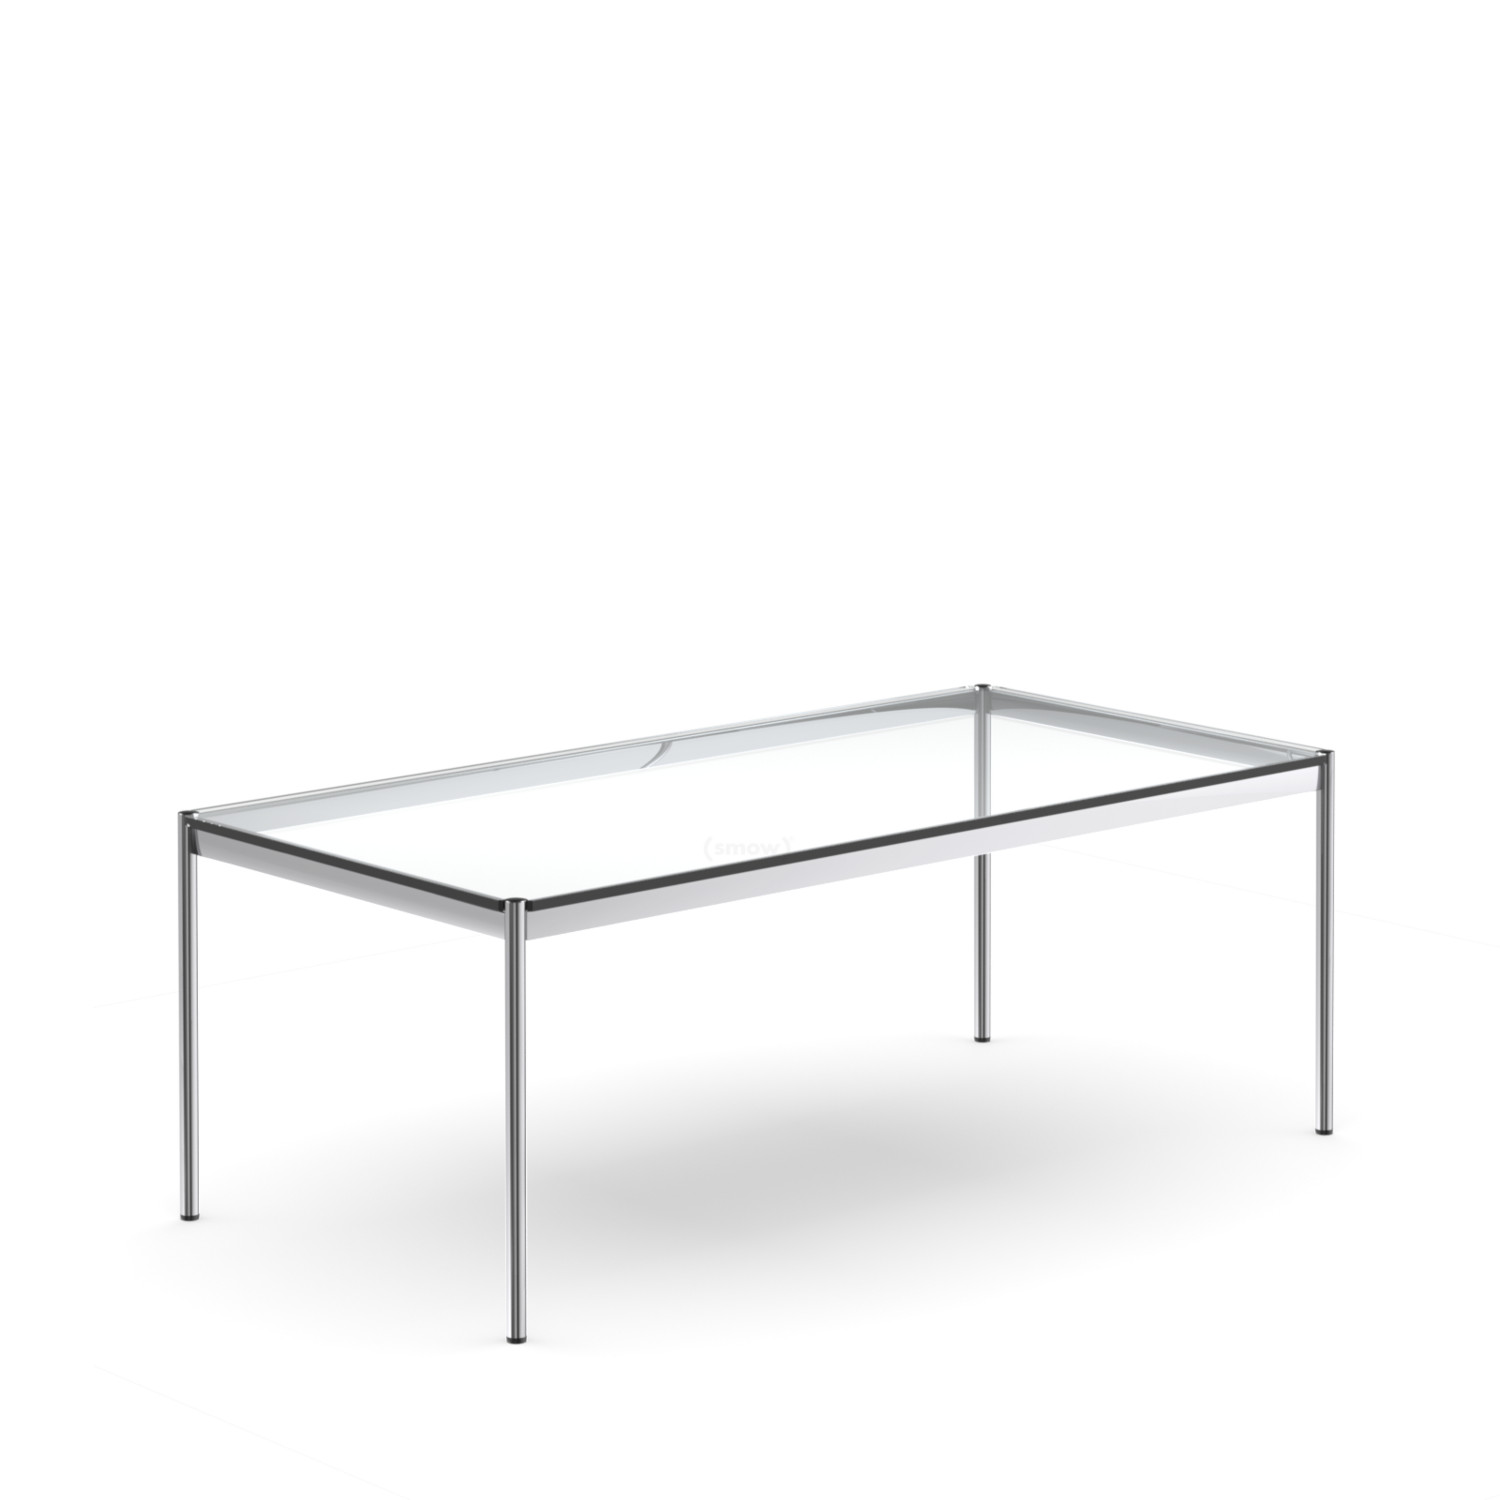 usm haller tisch 100 x 200 cm glas transparent von fritz haller paul sch rer 1962. Black Bedroom Furniture Sets. Home Design Ideas